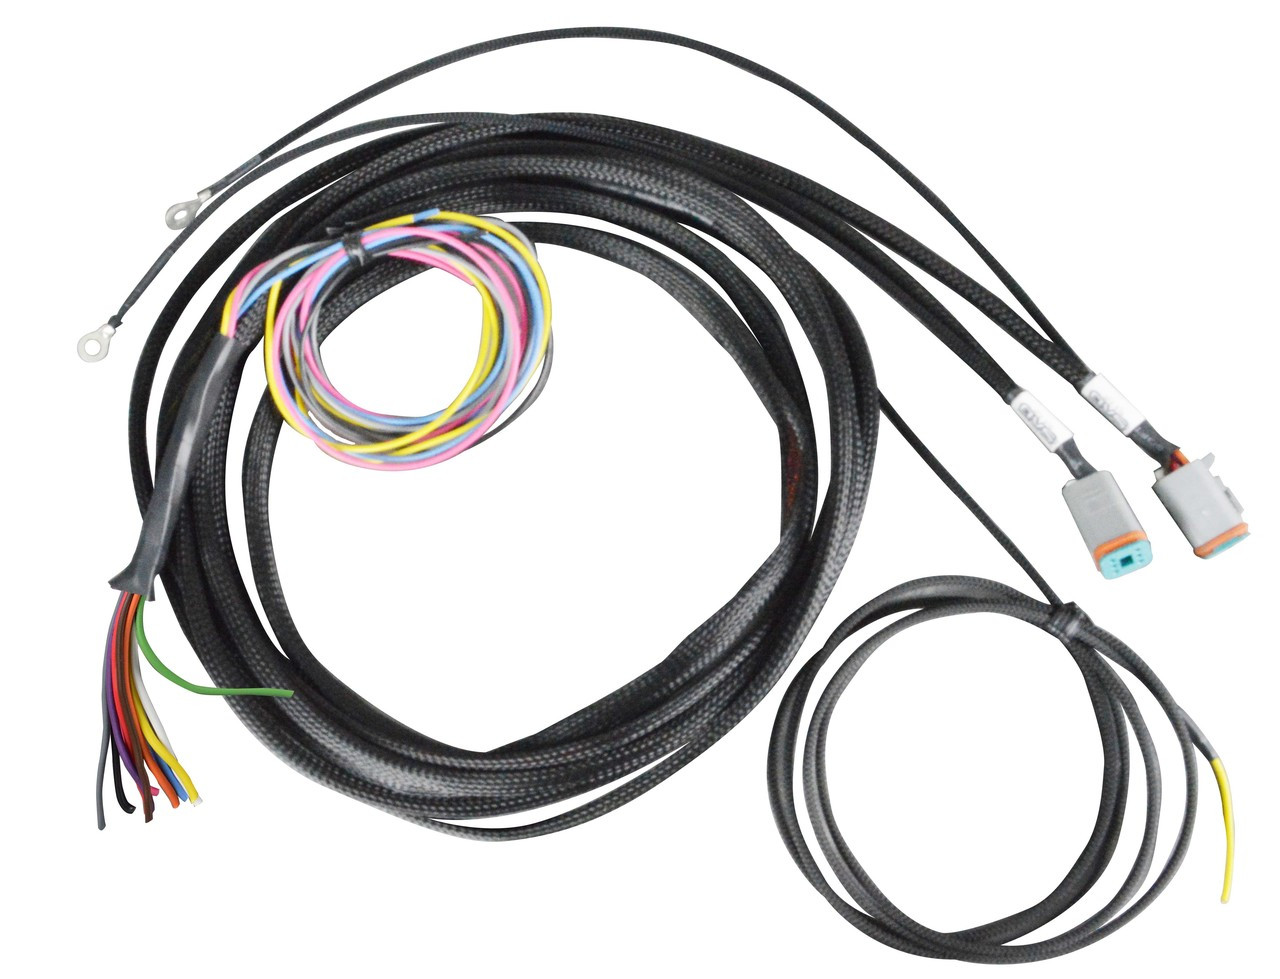 hight resolution of avs valve wiring harness 12 17 22 accuair endo